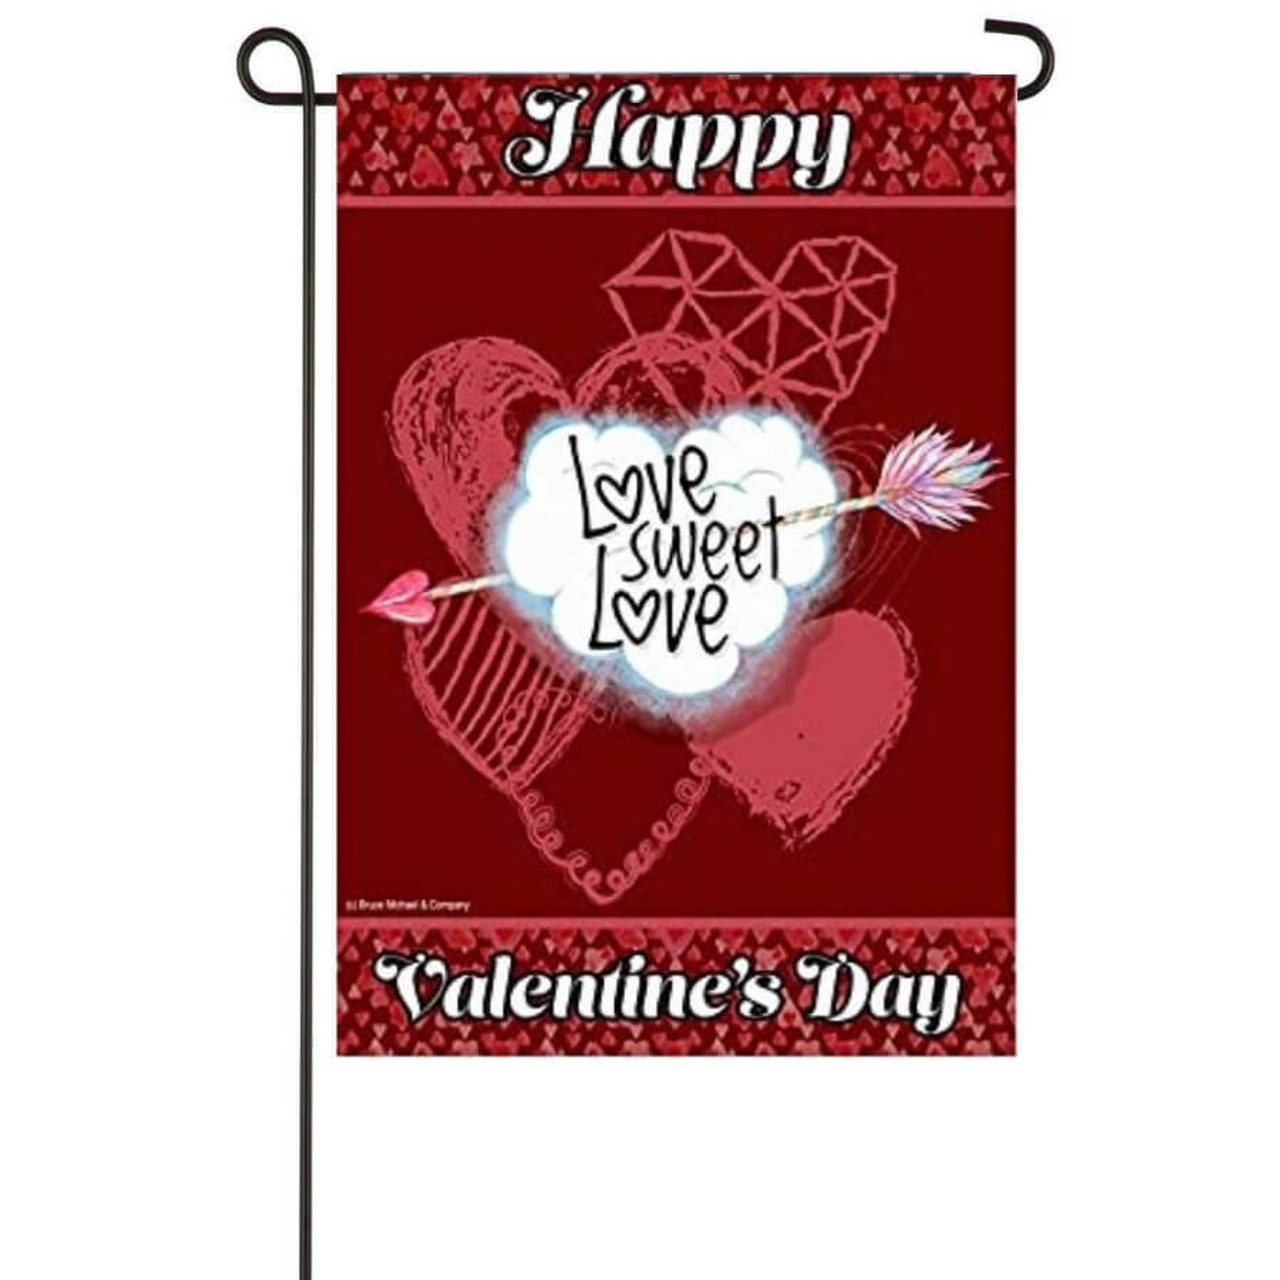 """A red flag. The middle has a cloud-shaped heart that says """"Love Sweet Love"""" with an arrow through it. Multiple light red hearts are behind it. The top of the flag says """"Happy,"""" and the bottom days """"Valentine's Day."""""""